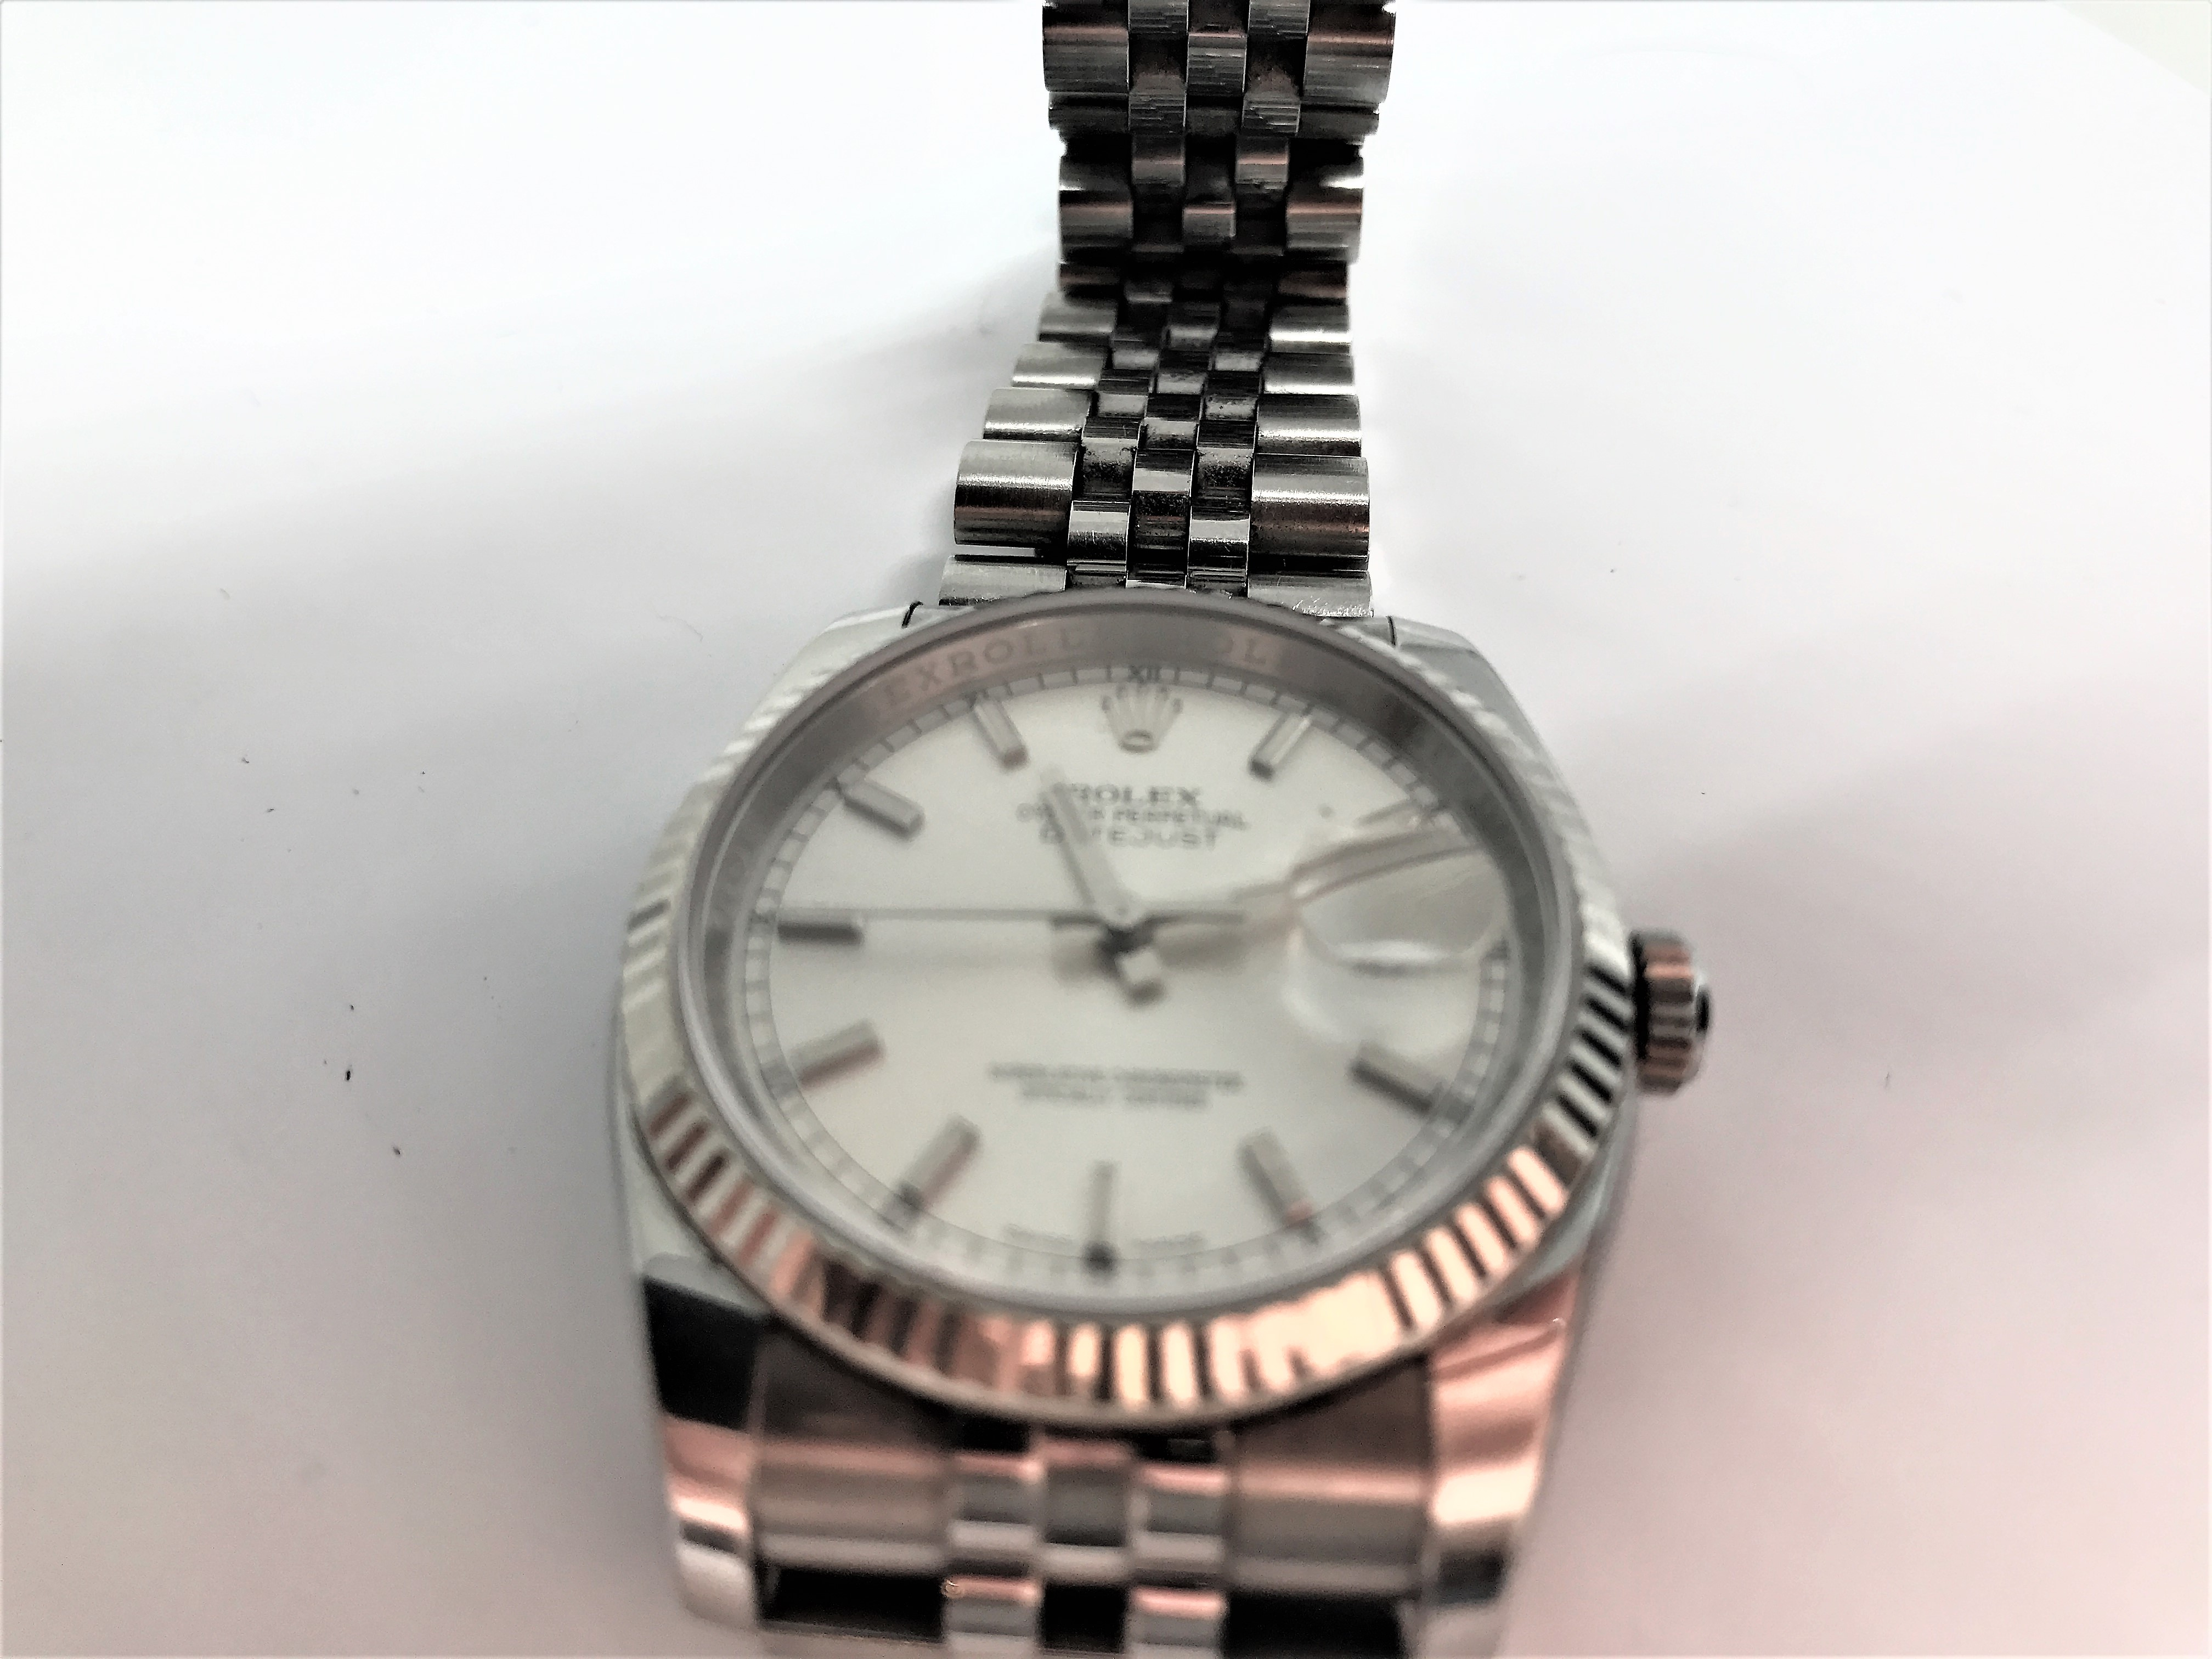 116234 datejust 36mm 2011 - Image 4 of 7